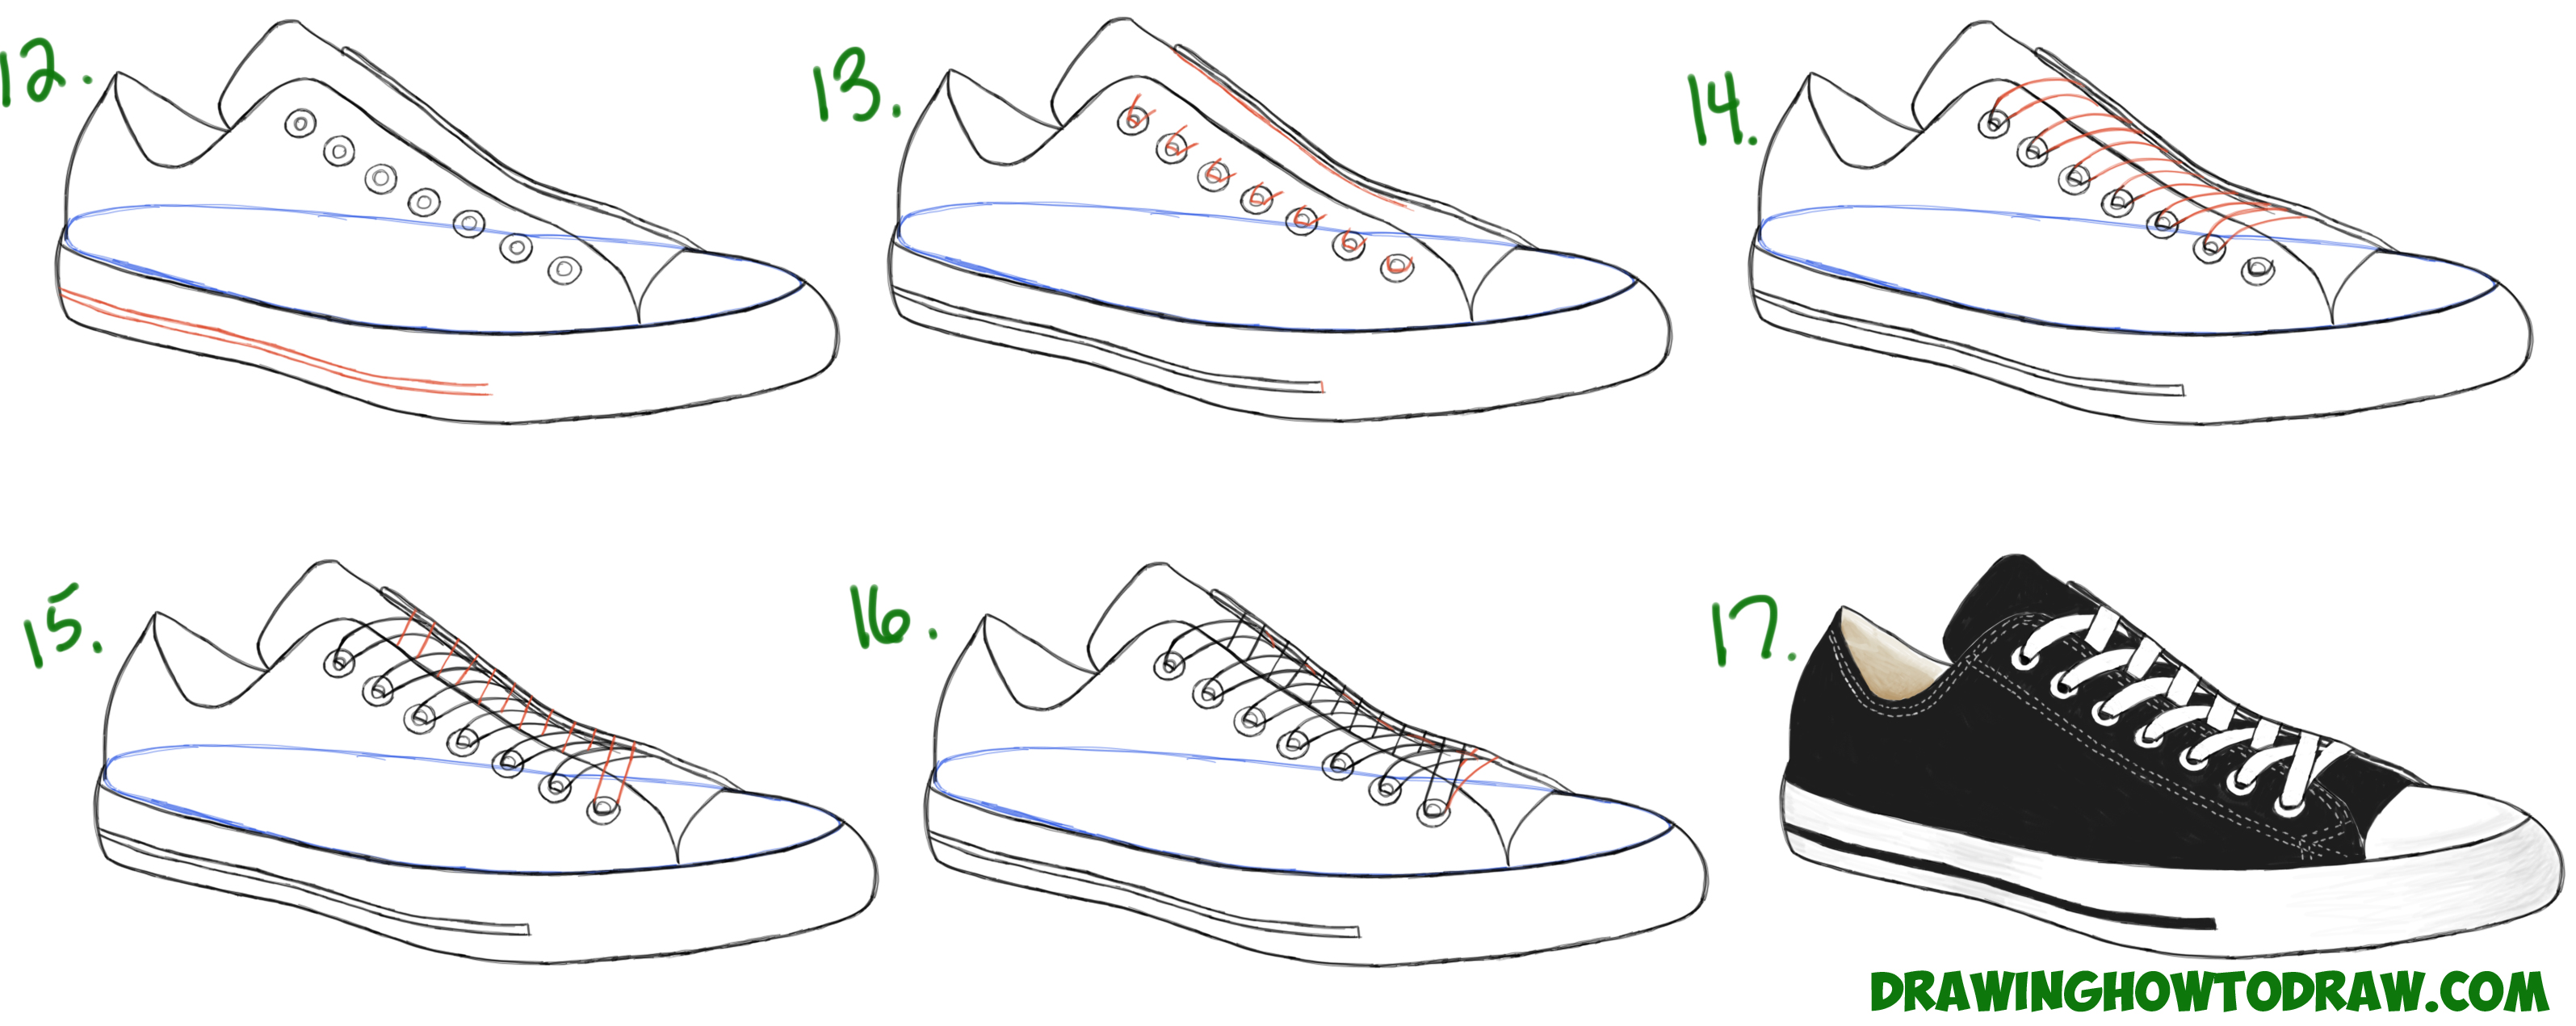 e4837d4f65c9 Learn How to Draw Sneakers   Shoes (Converse   Keds) with Simple Steps  Drawing